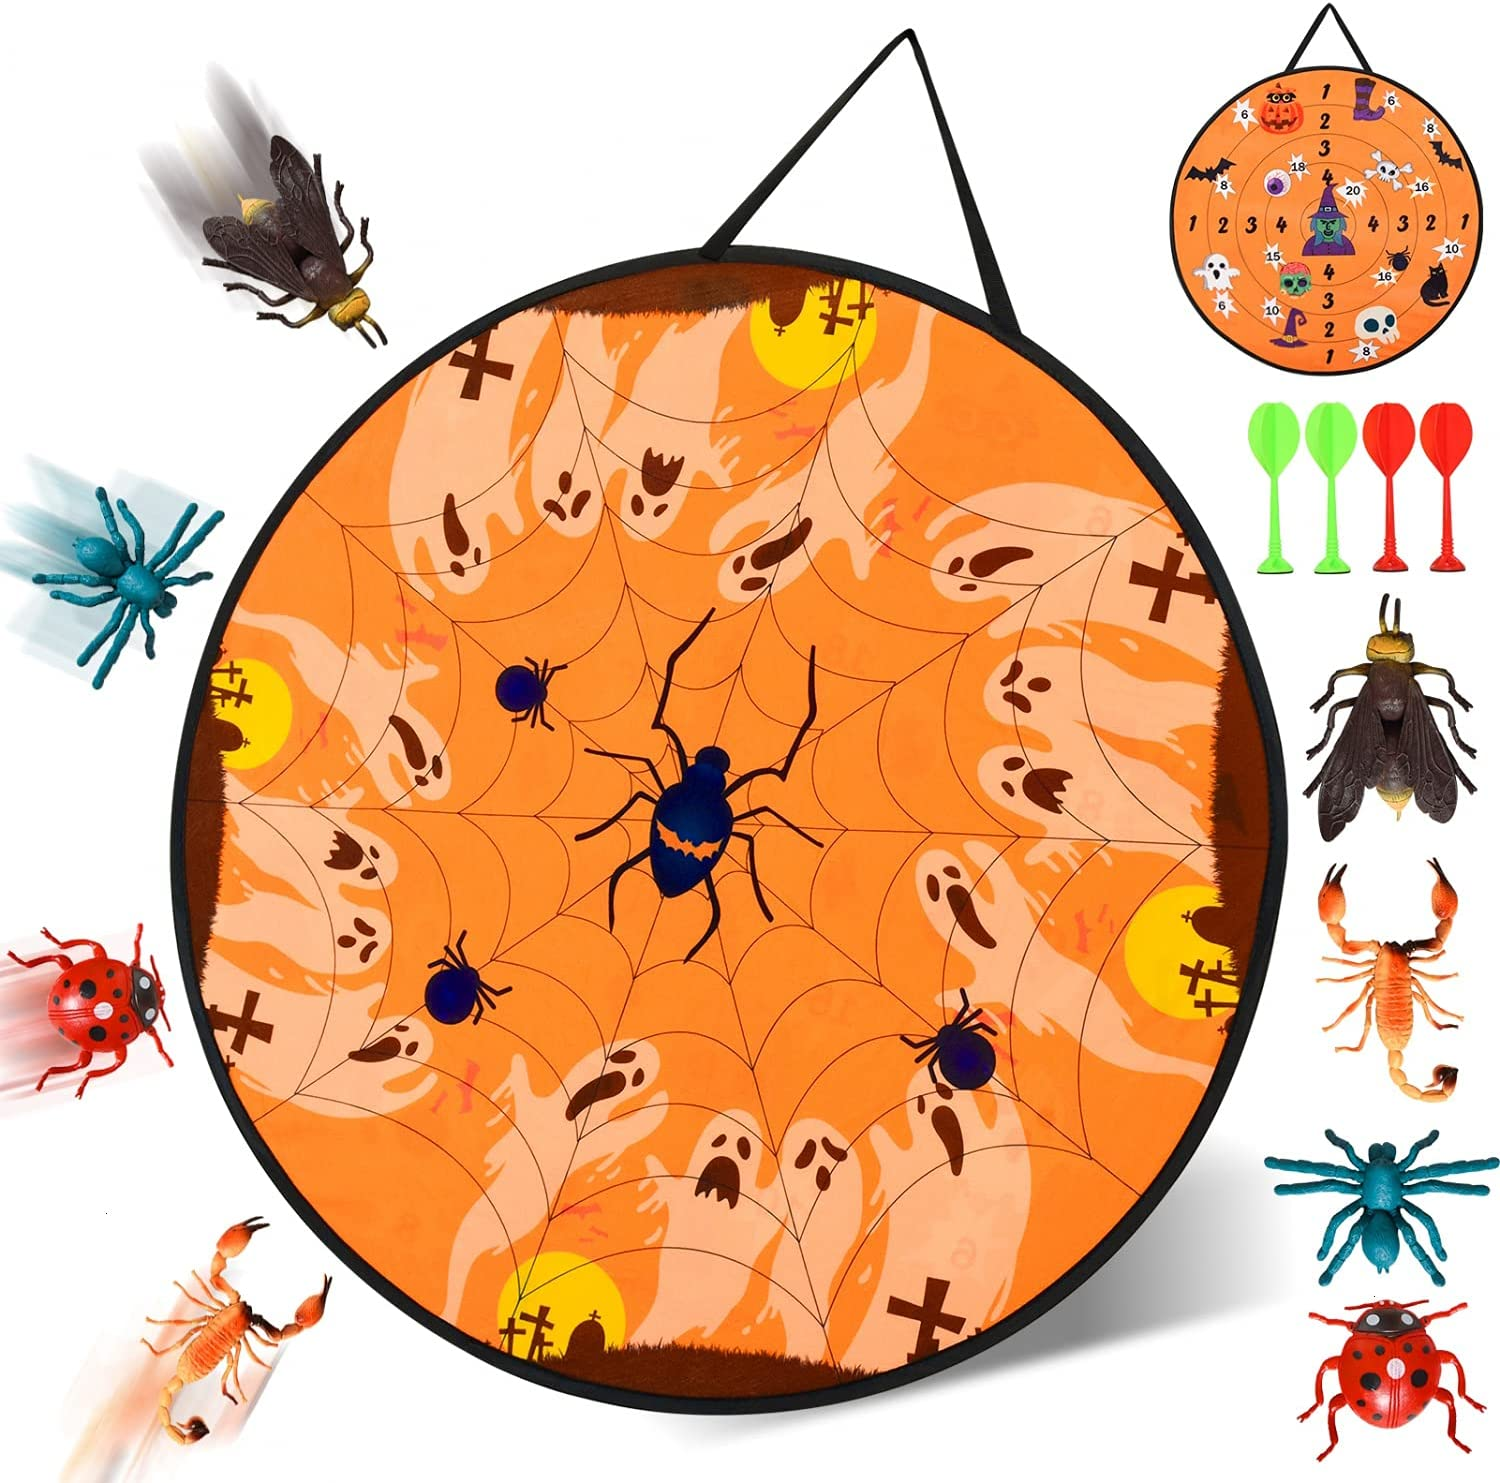 JETEHO Halloween Dart Board for Kids with 8 Toy Darts Throwing G